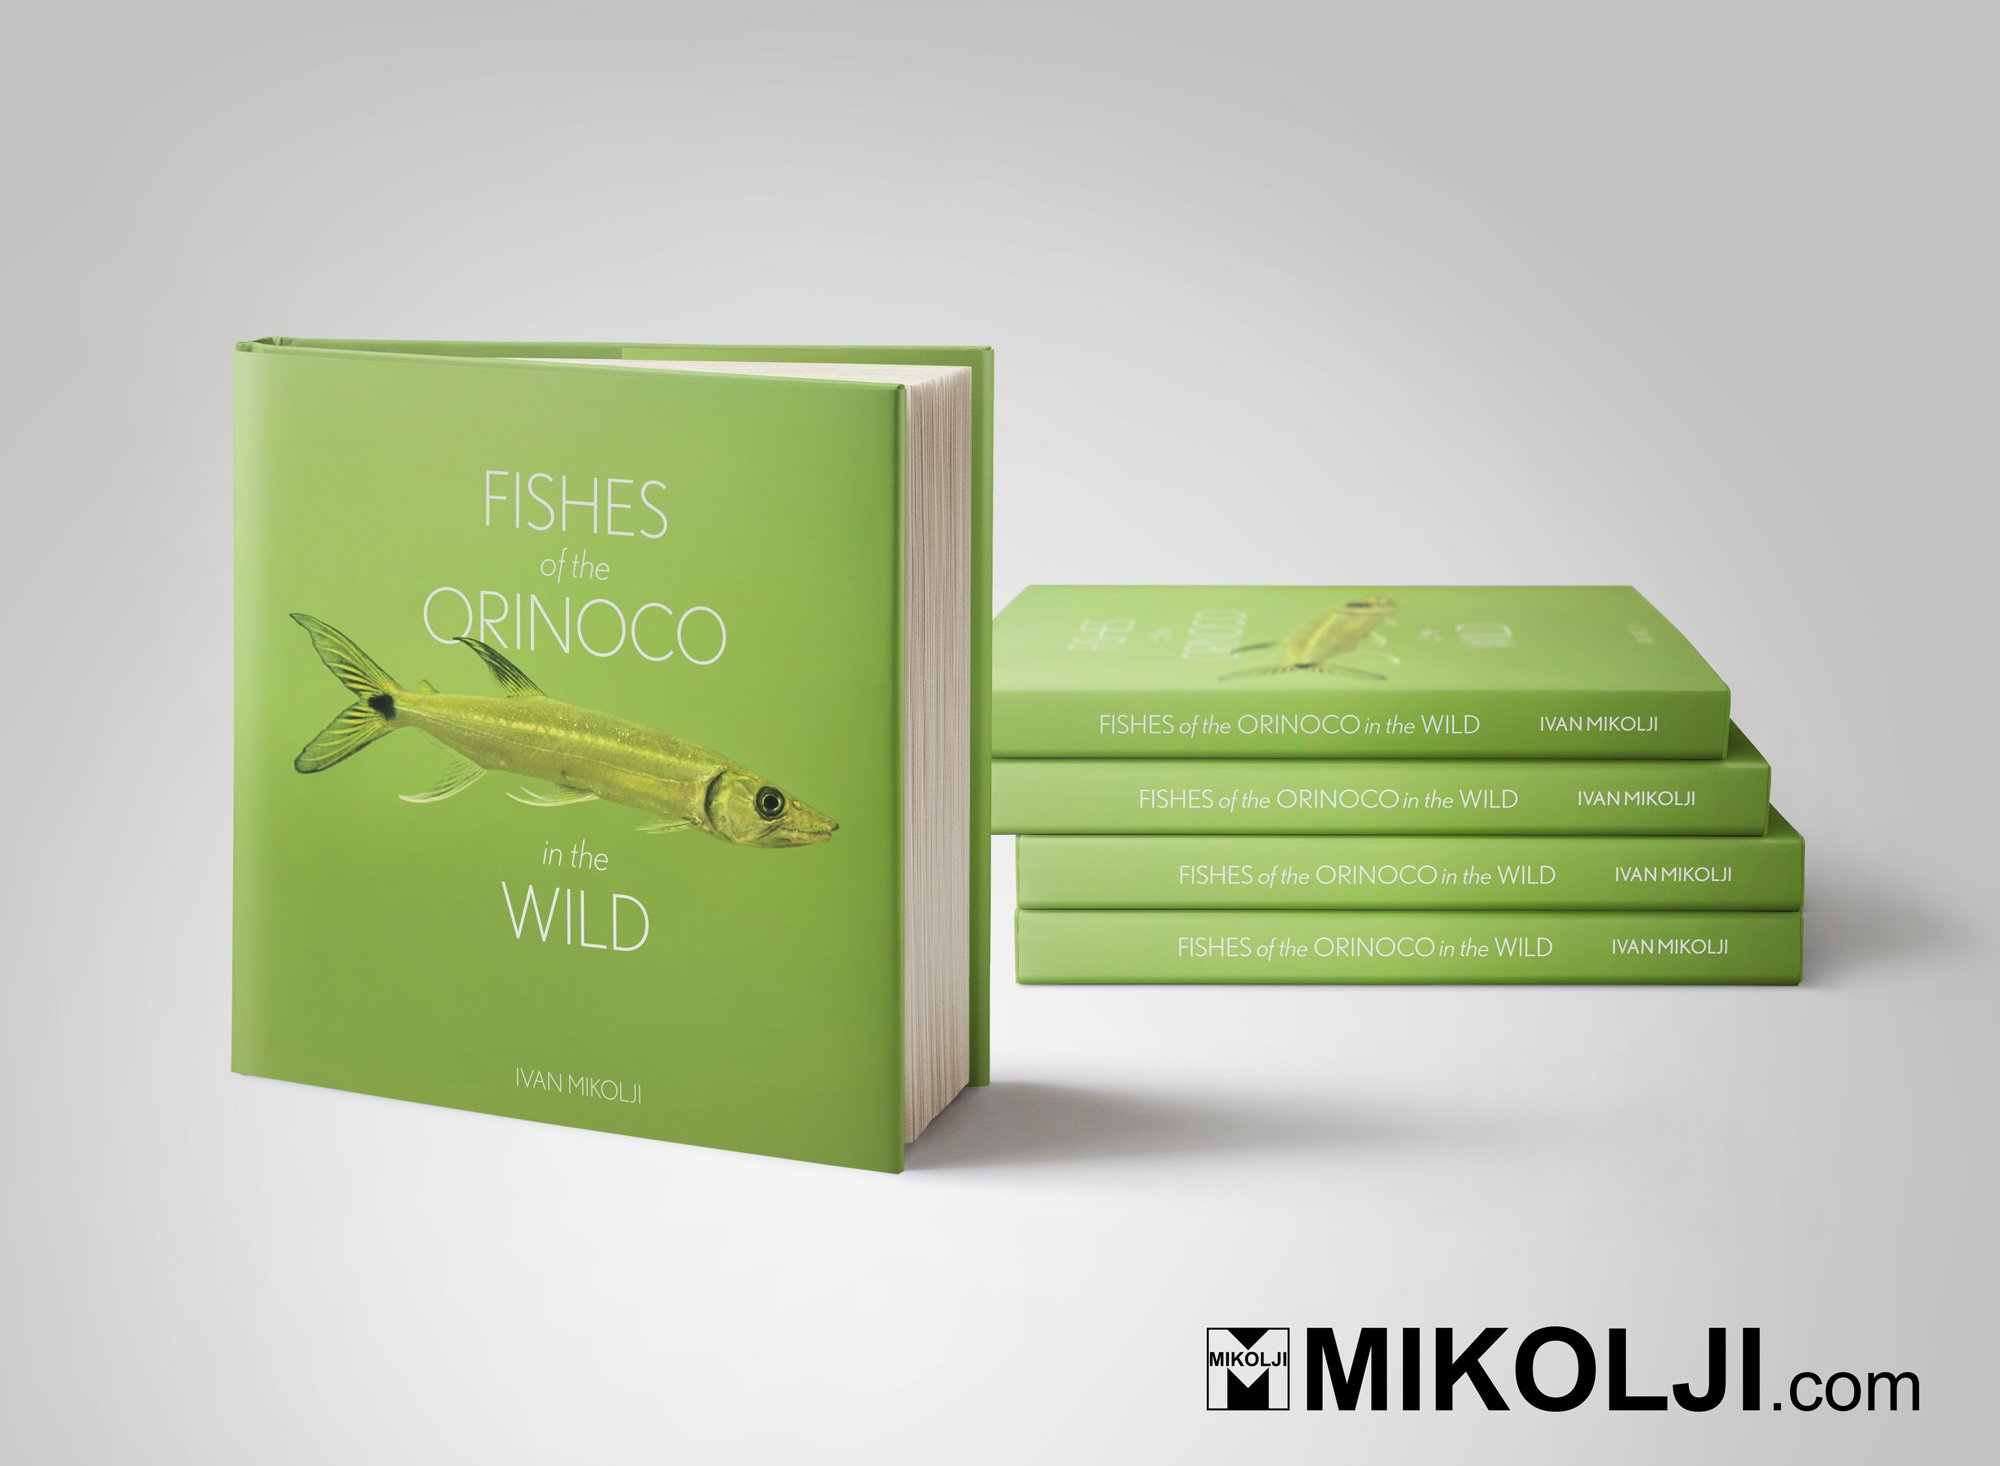 Fishes of the Orinoco in the Wild book